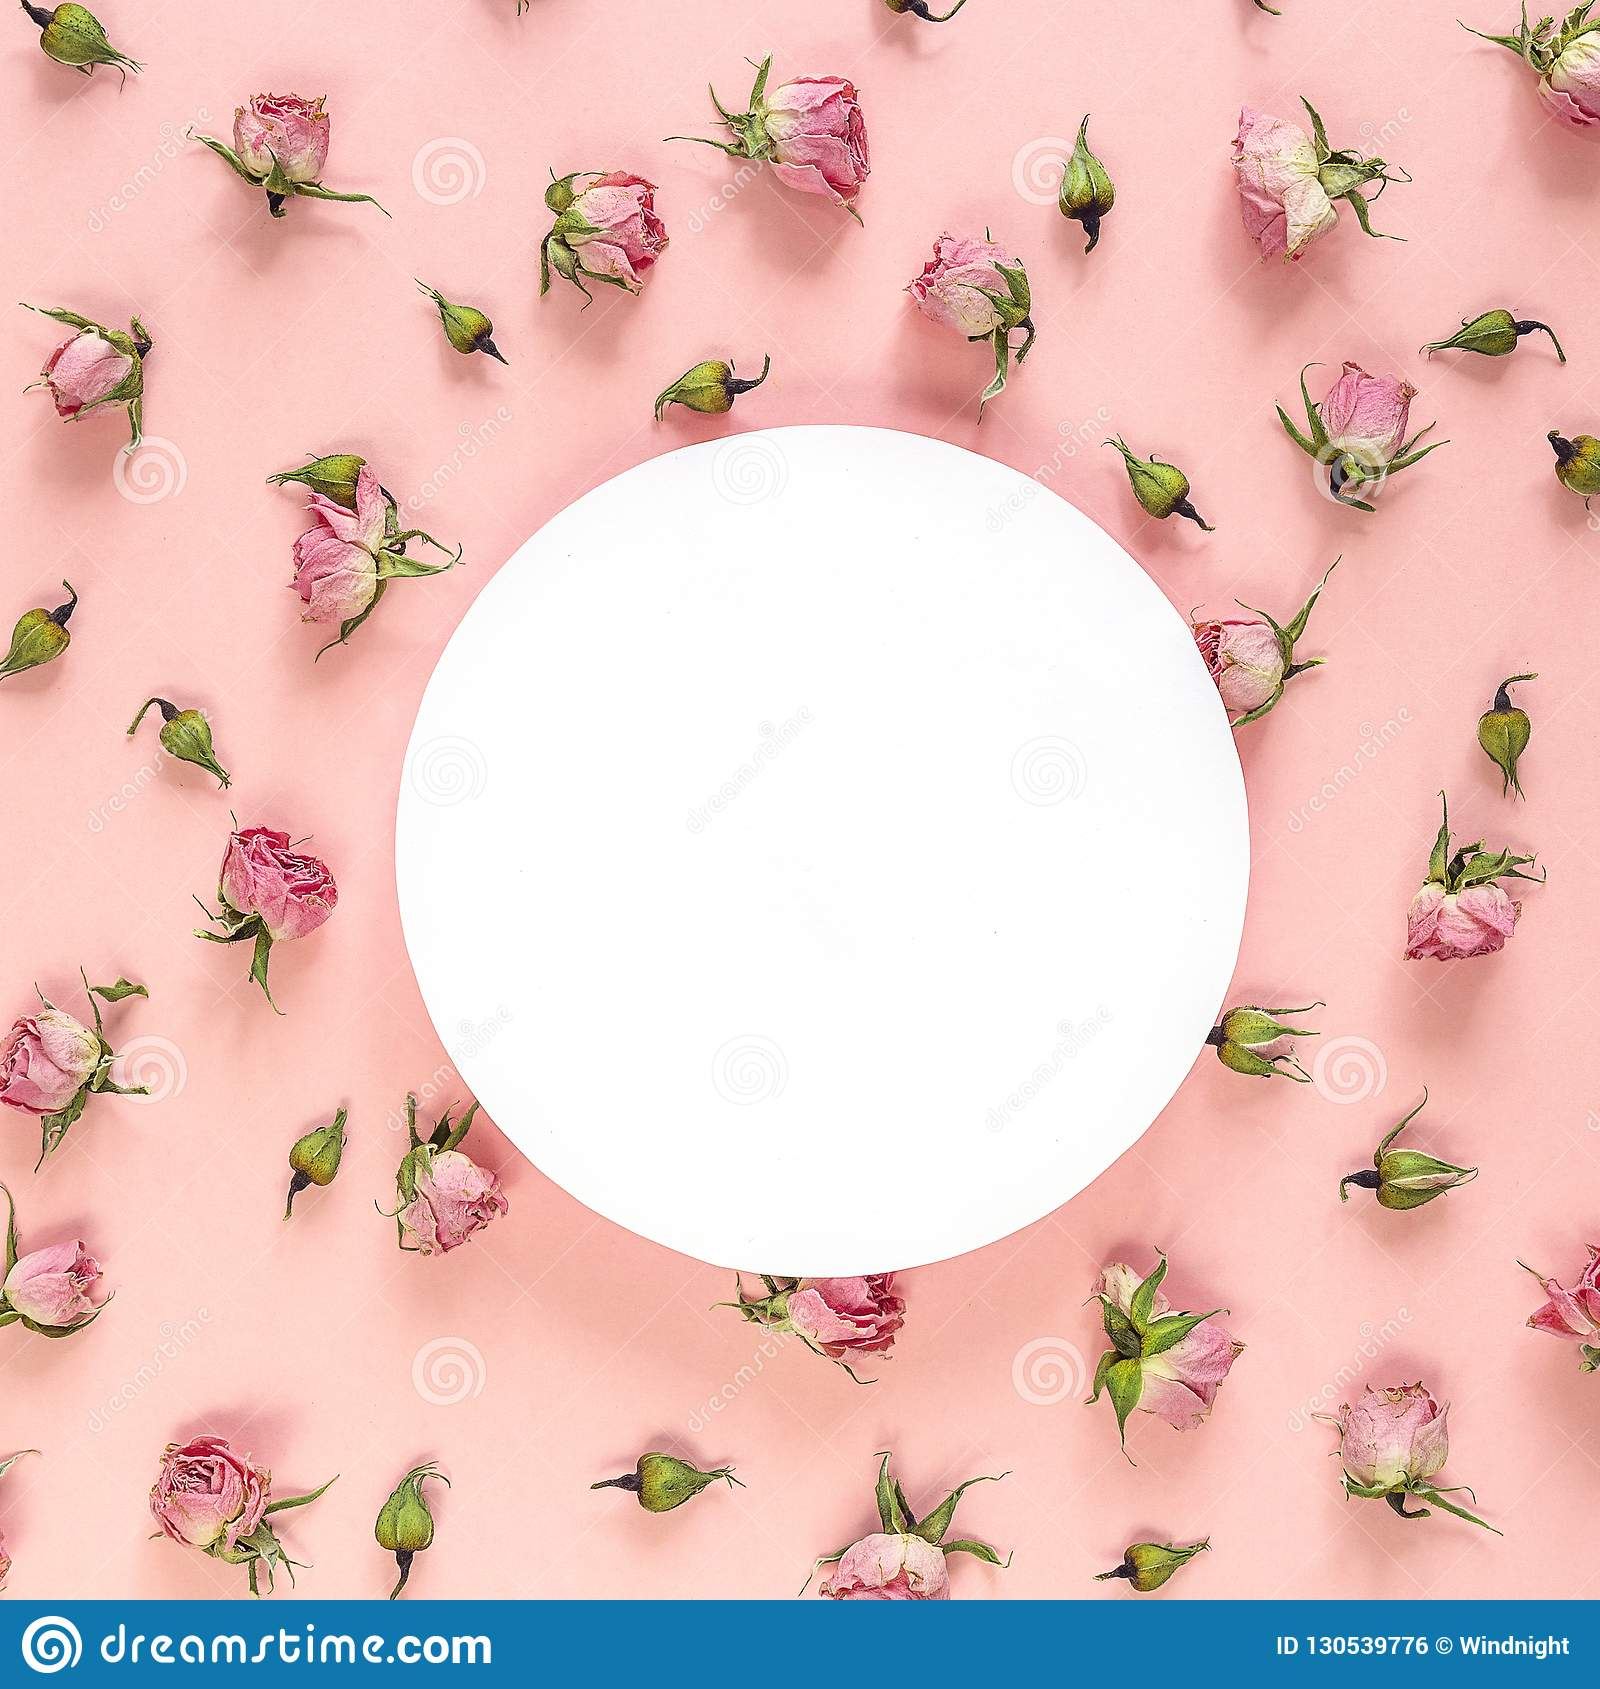 Round frame with pink roses on pink background. Place for text.